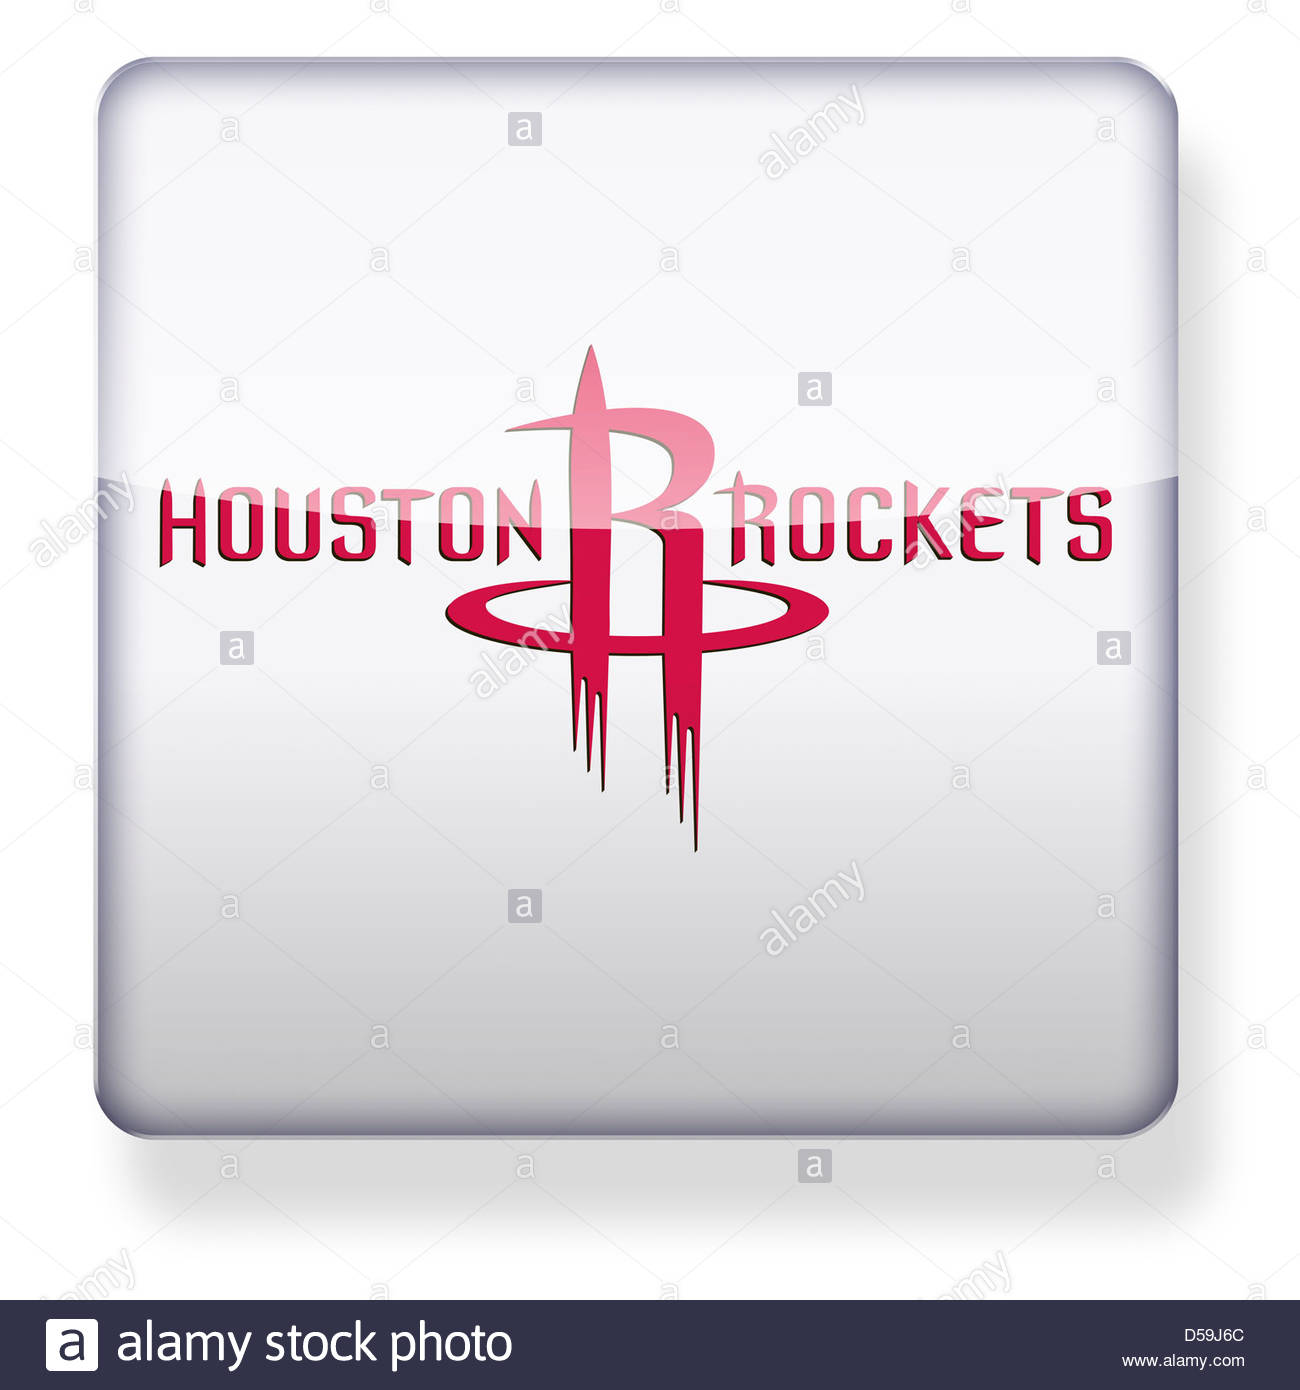 Houston Rockets logo as an app icon. Clipping path included. - Stock Image